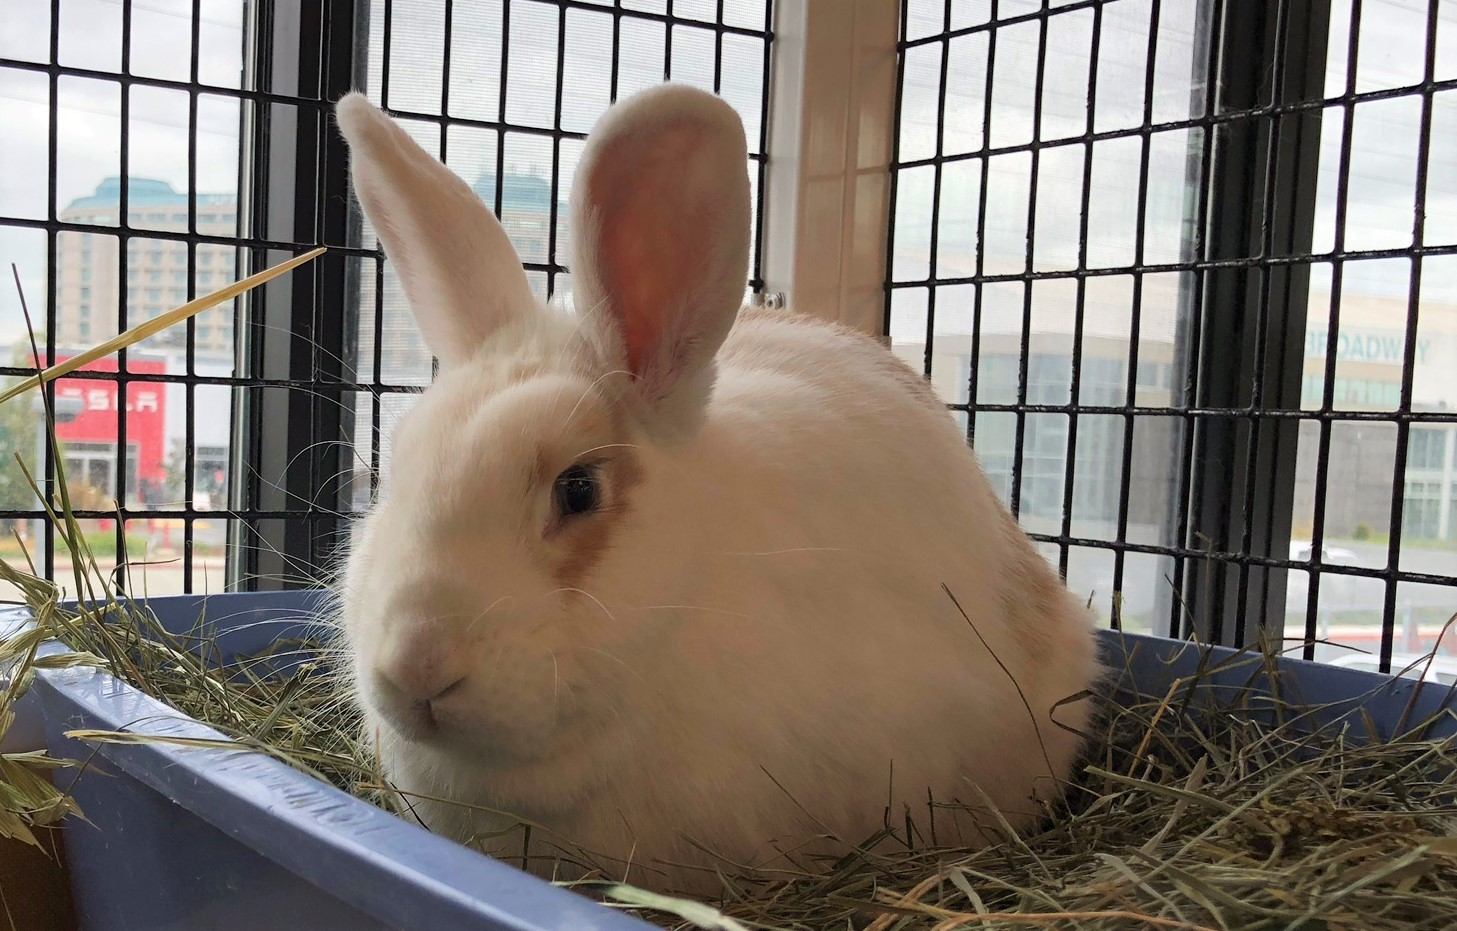 Peninsula Humane Society and SPCA's Pet of the Week: Snow White